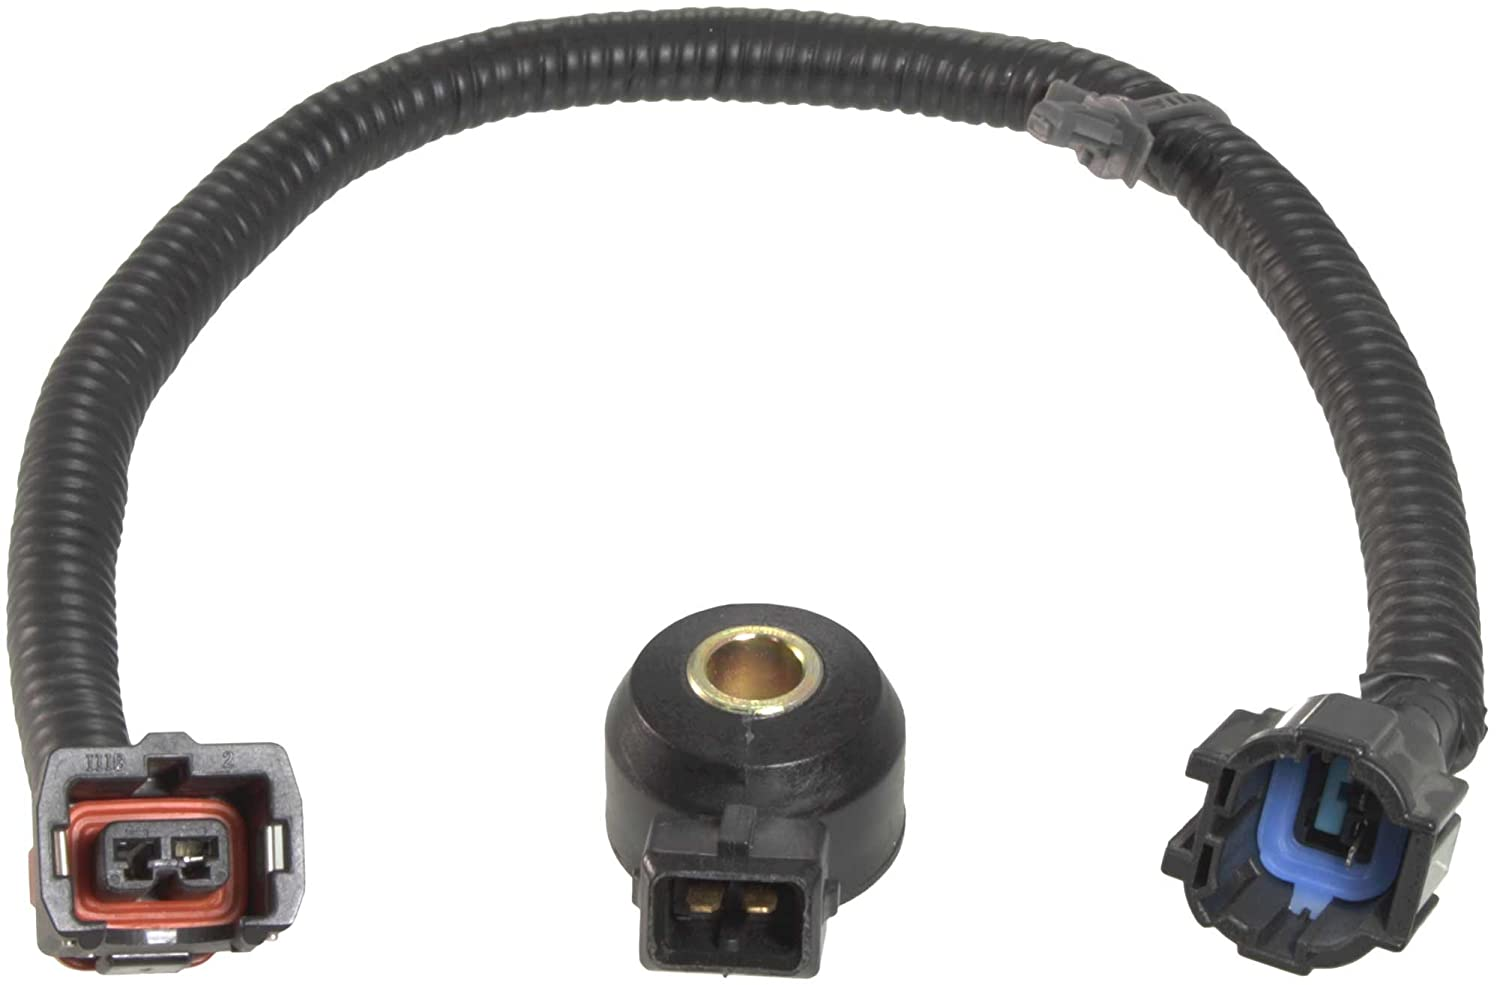 Apdty 028252 Knock Sensor With New Wiring Harness Pigtail Connector Fits Select 1990 2002 Nissan Or Infiniti Mode Ls Listed In The Compatibility Chart 1997 Maxima Alarm